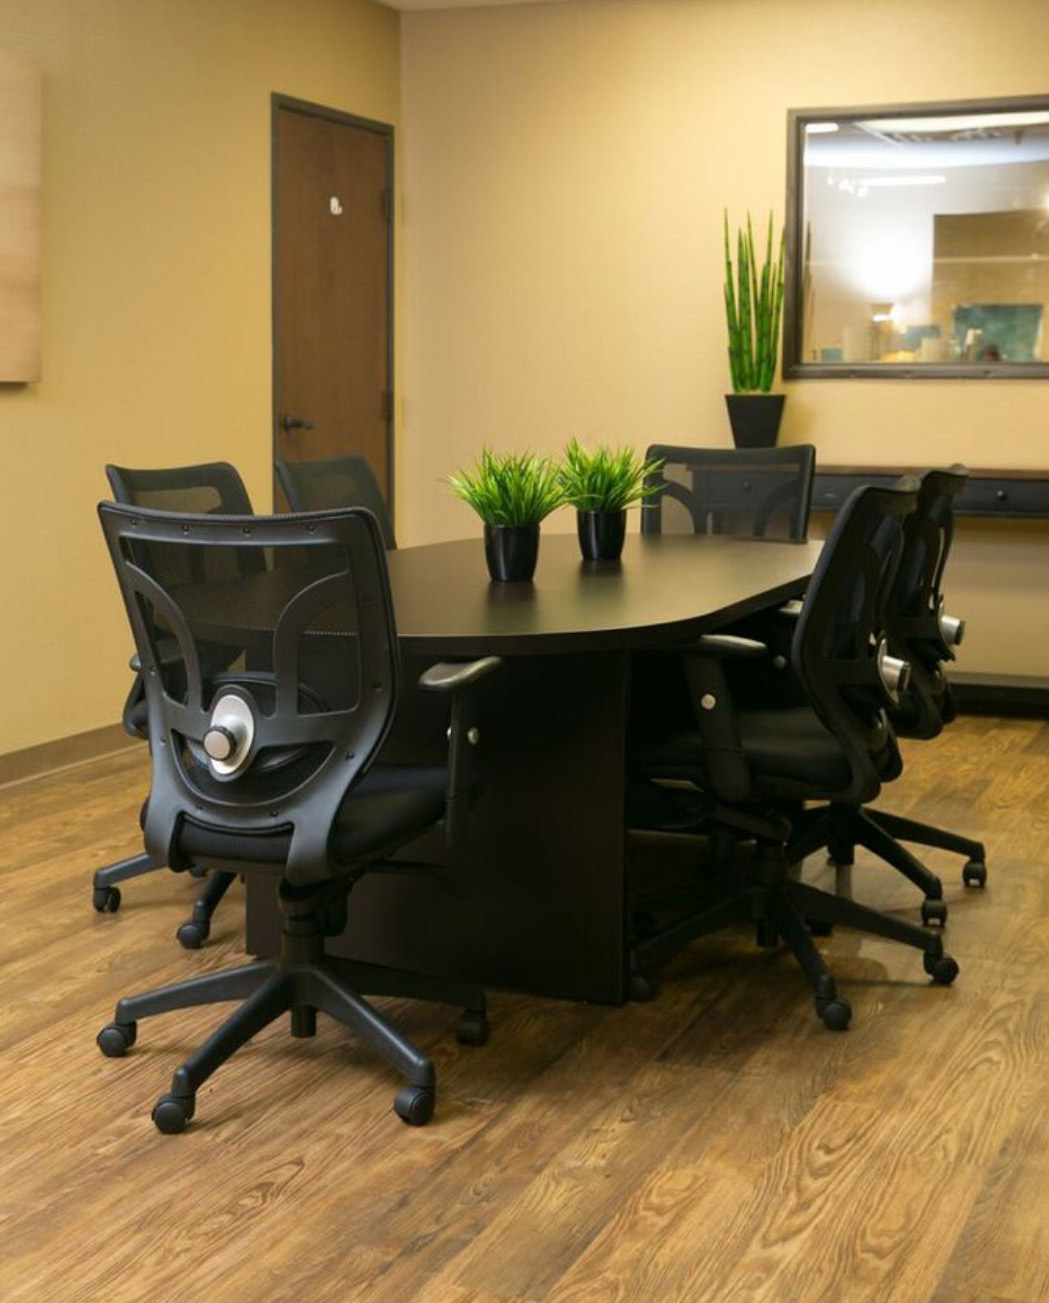 Office furniture rental in dfw austin charter furniture rental Home furniture rental austin texas